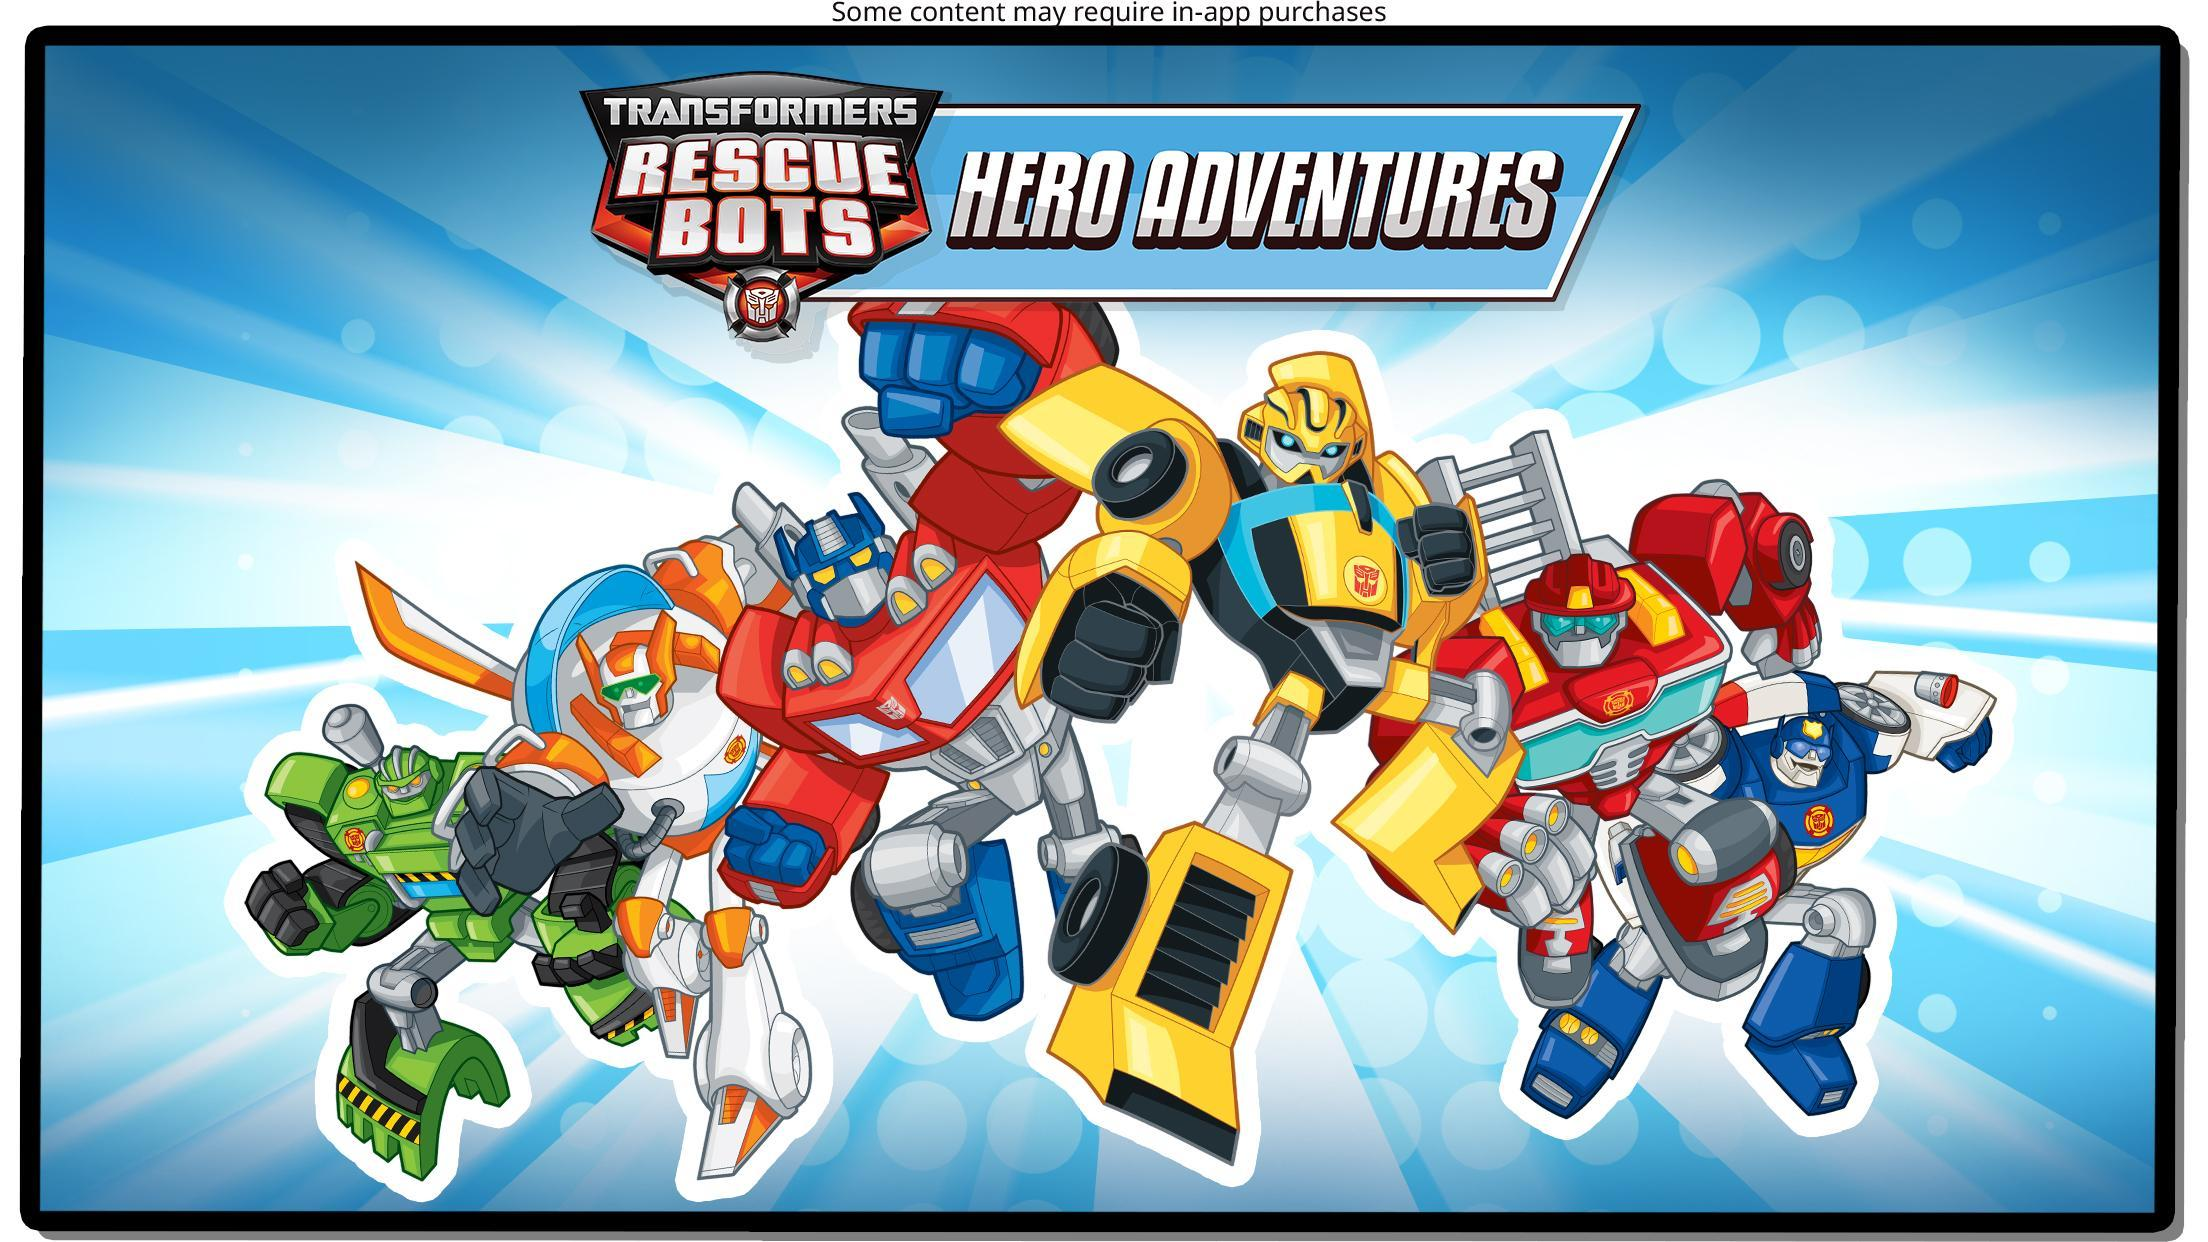 Transformers Rescue Bots: Hero Adventures 2.1 Screenshot 6